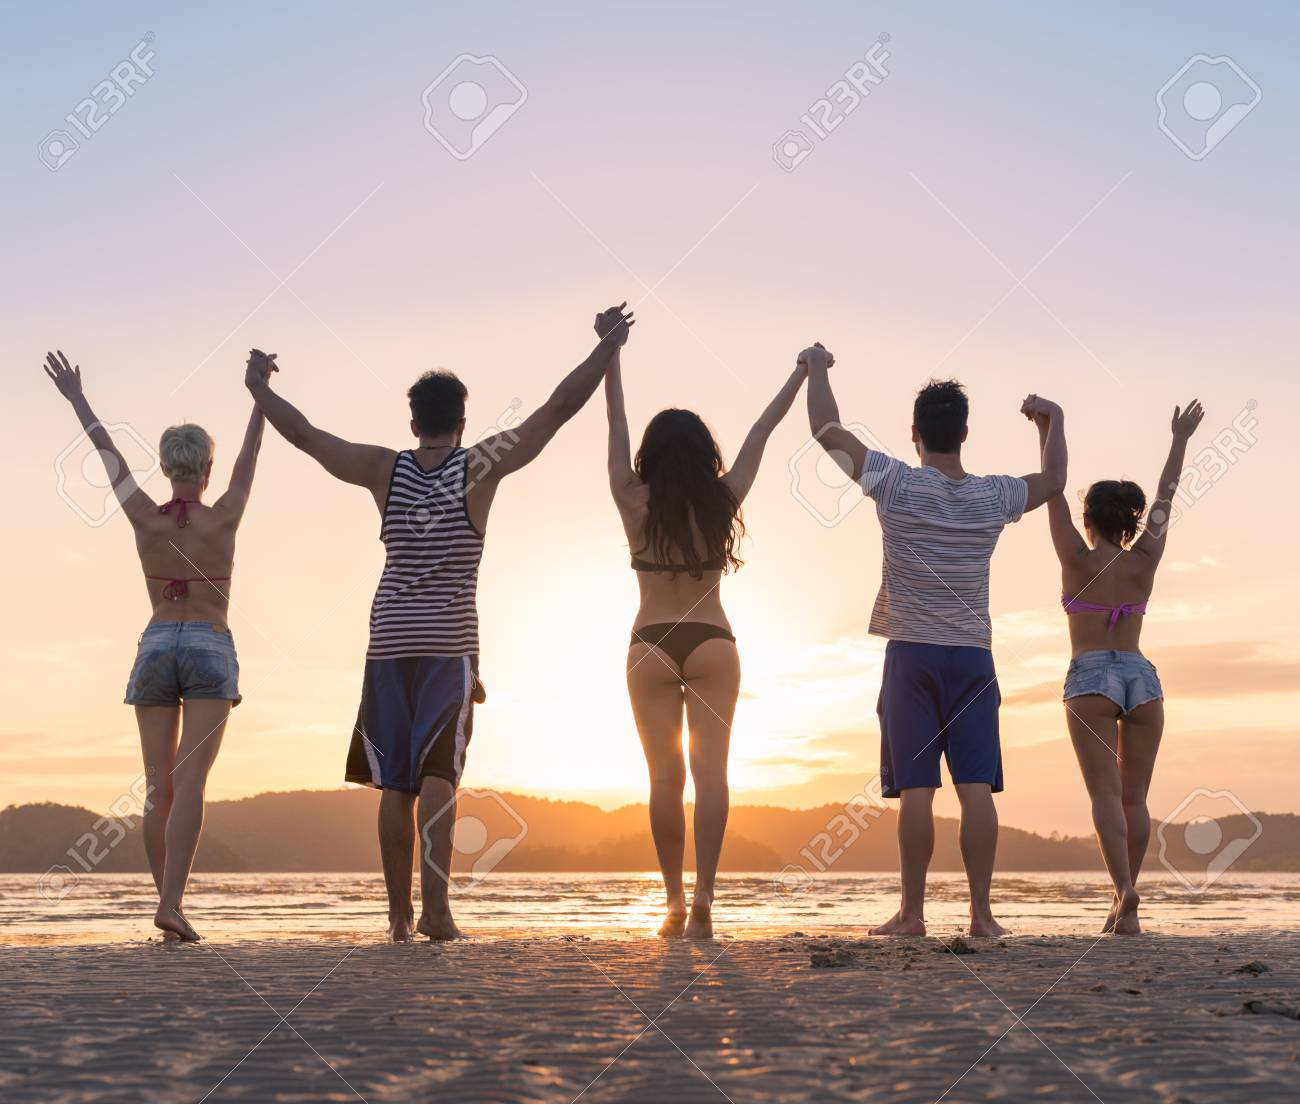 Young People Group On Beach At Sunset Summer Vacation Friends